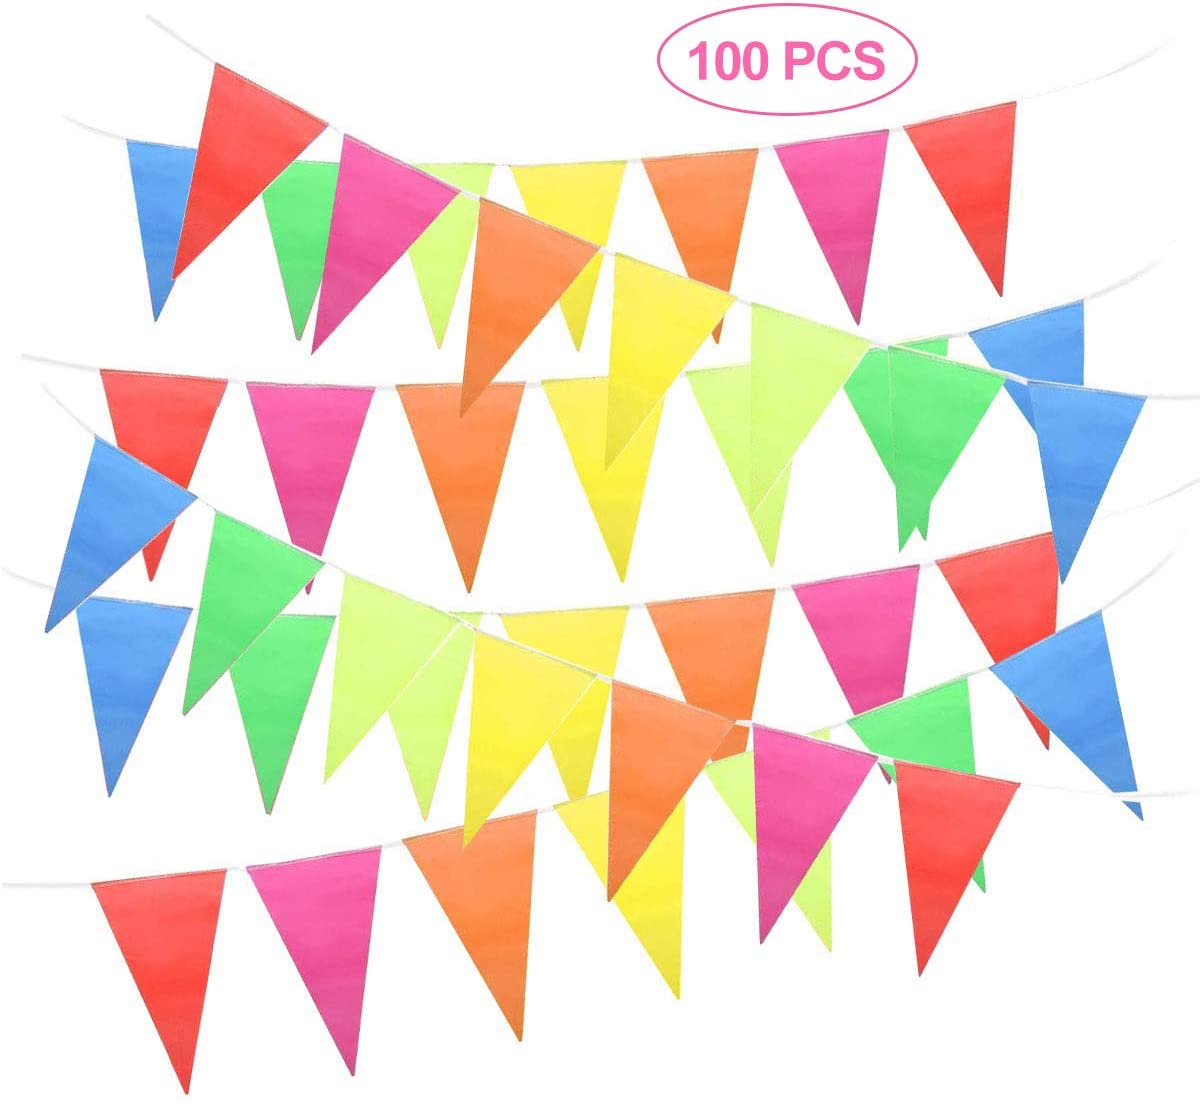 Orange 20 Flag Plastic 10 Metre Bunting Flags Party Decoration Celebration